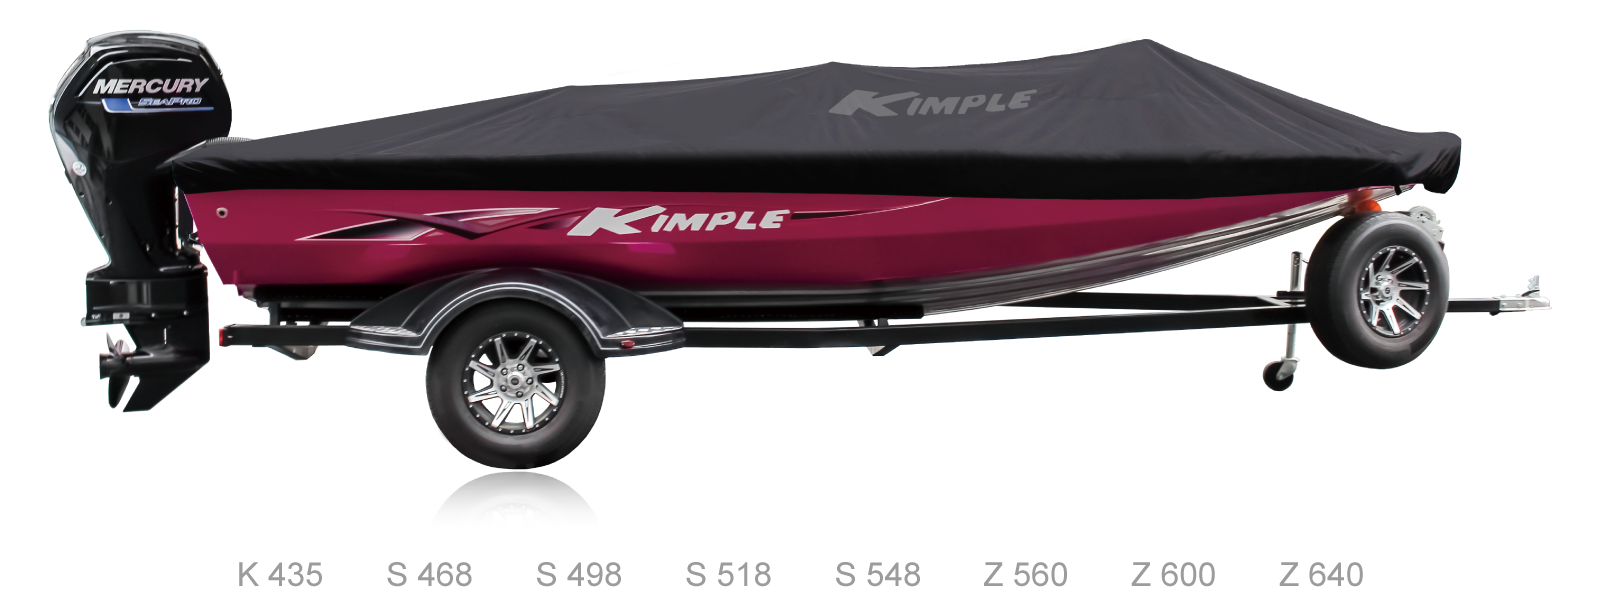 Kimple boat cover